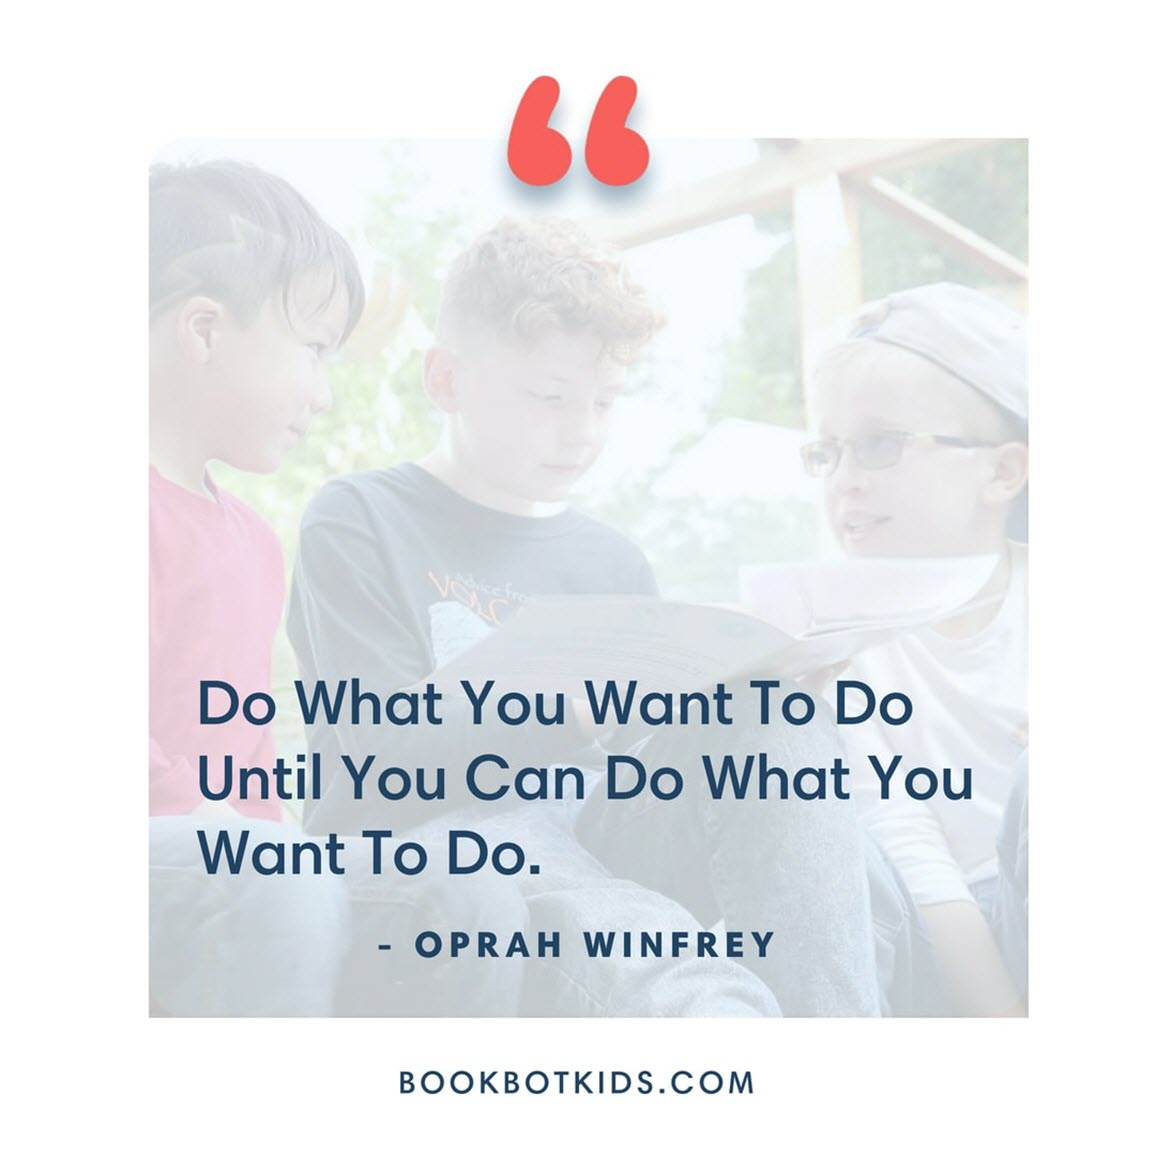 Do What You Want To Do Until You Can Do What You Want To Do. – Oprah Winfrey